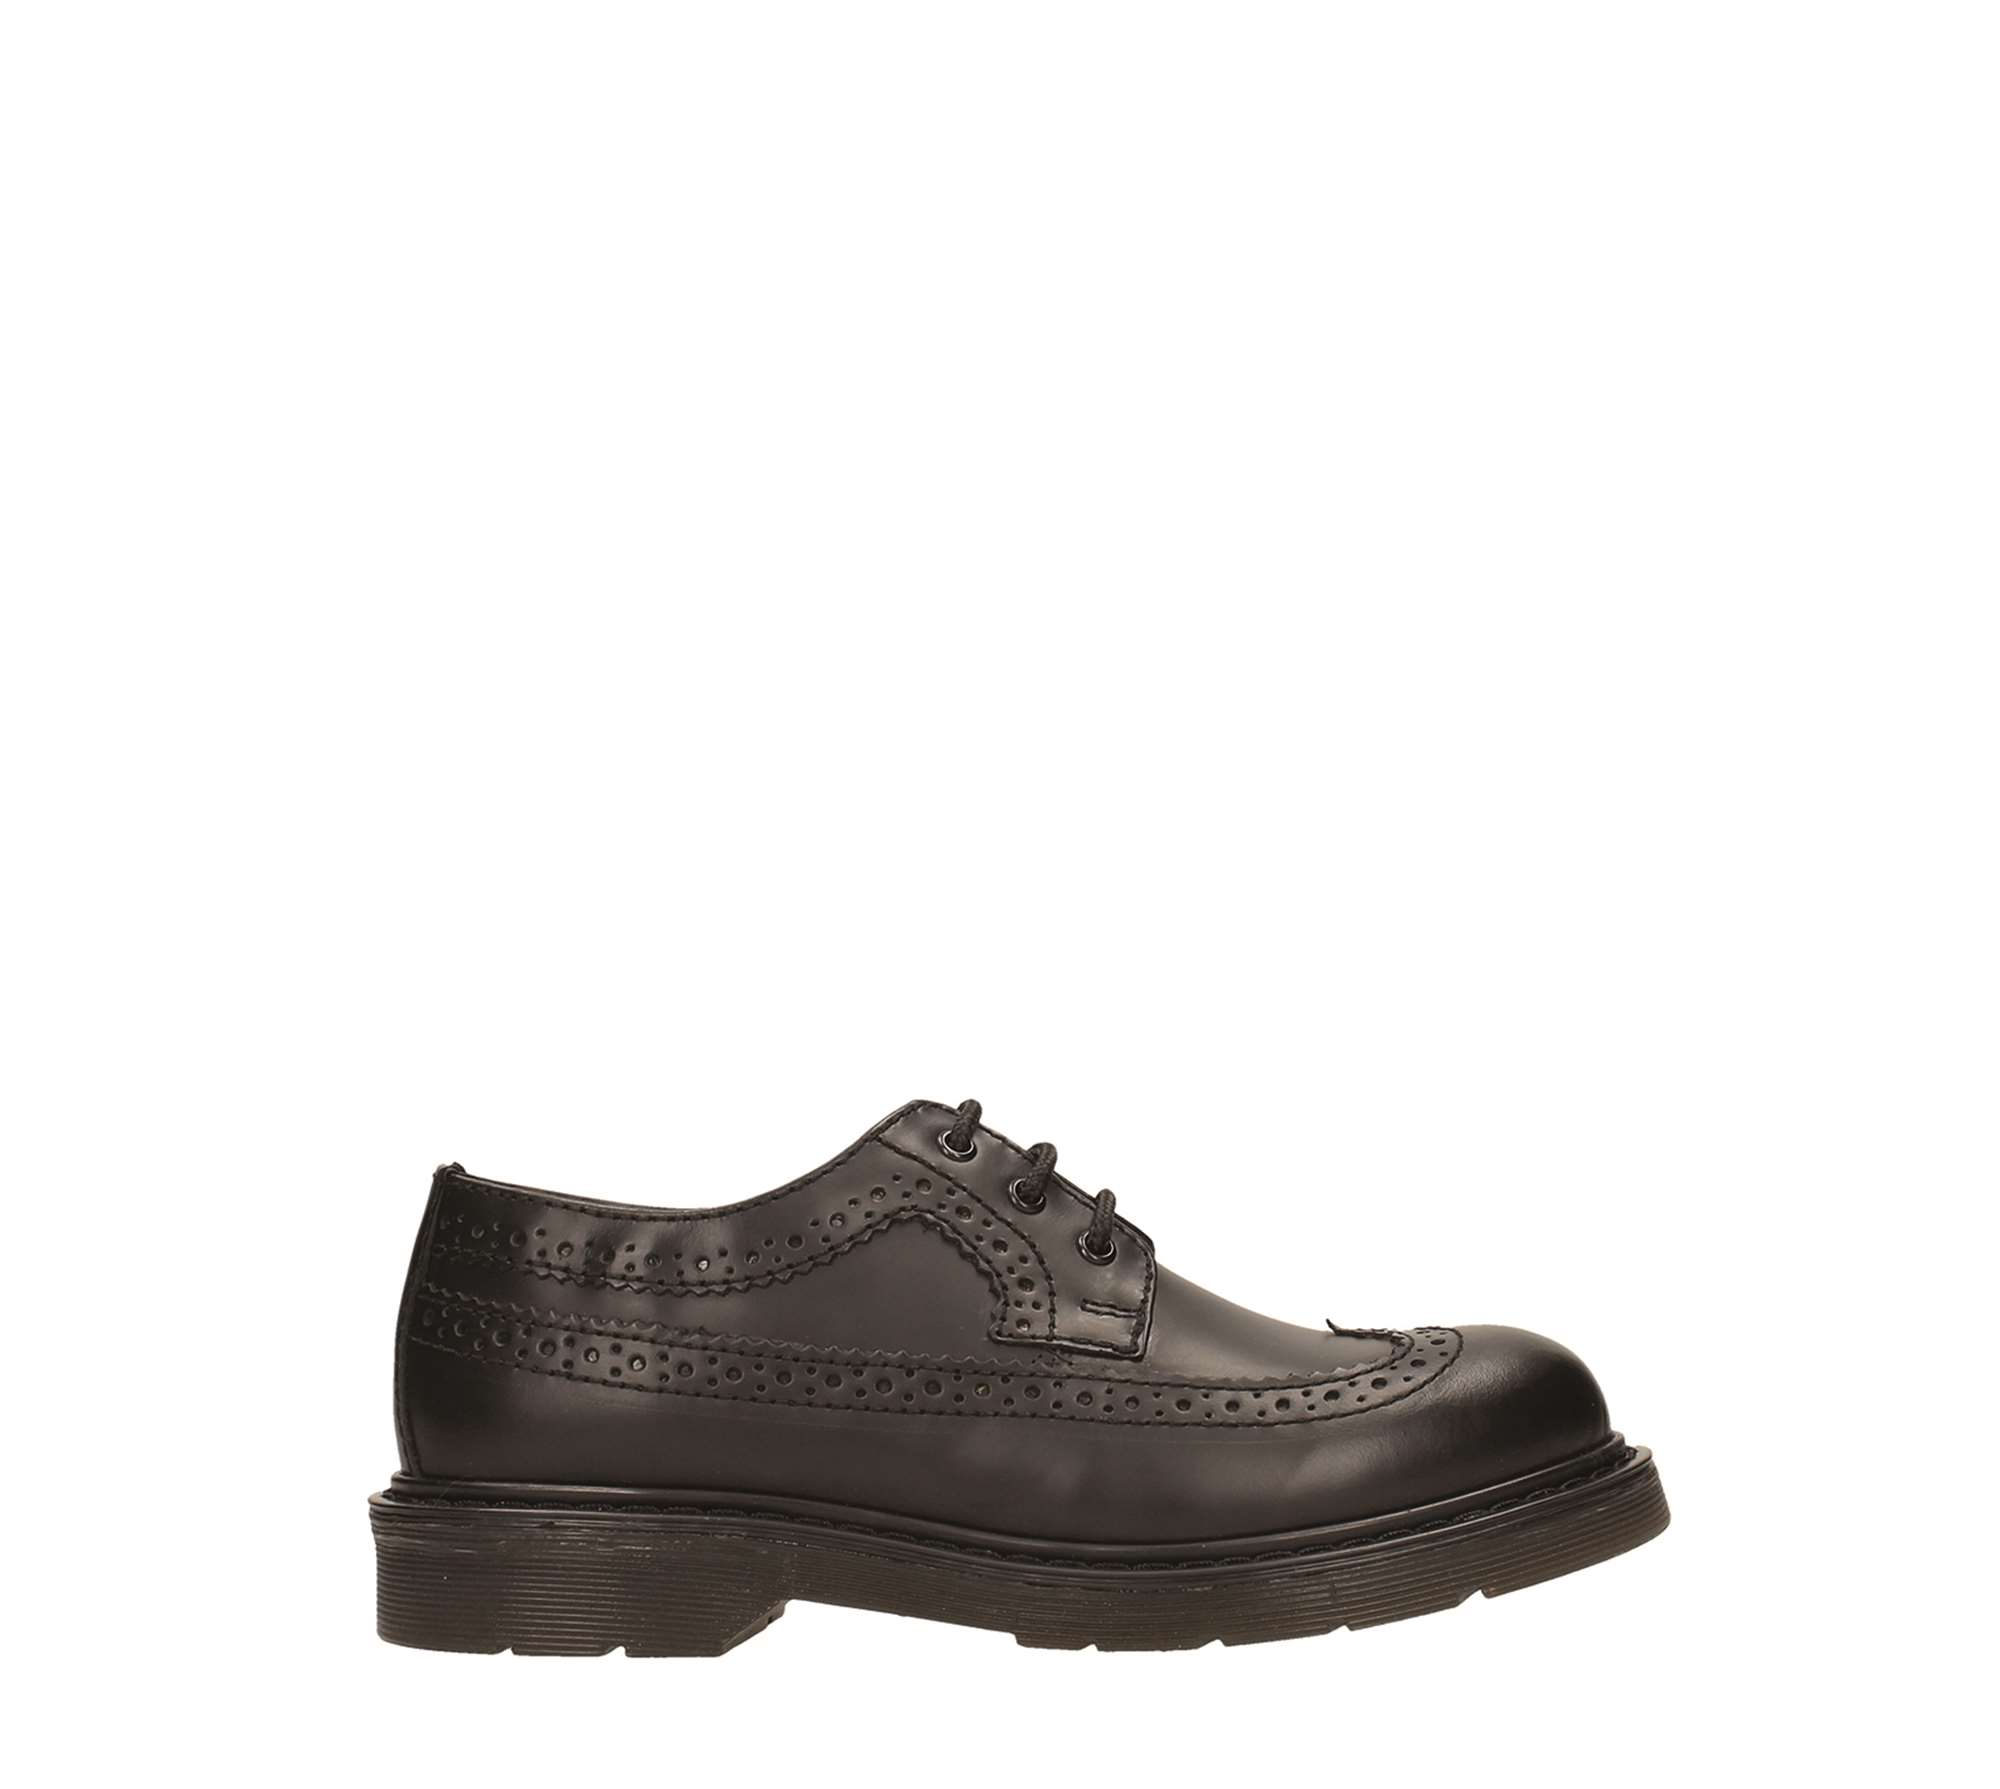 Tata Italia Shoes Woman Derby S9027